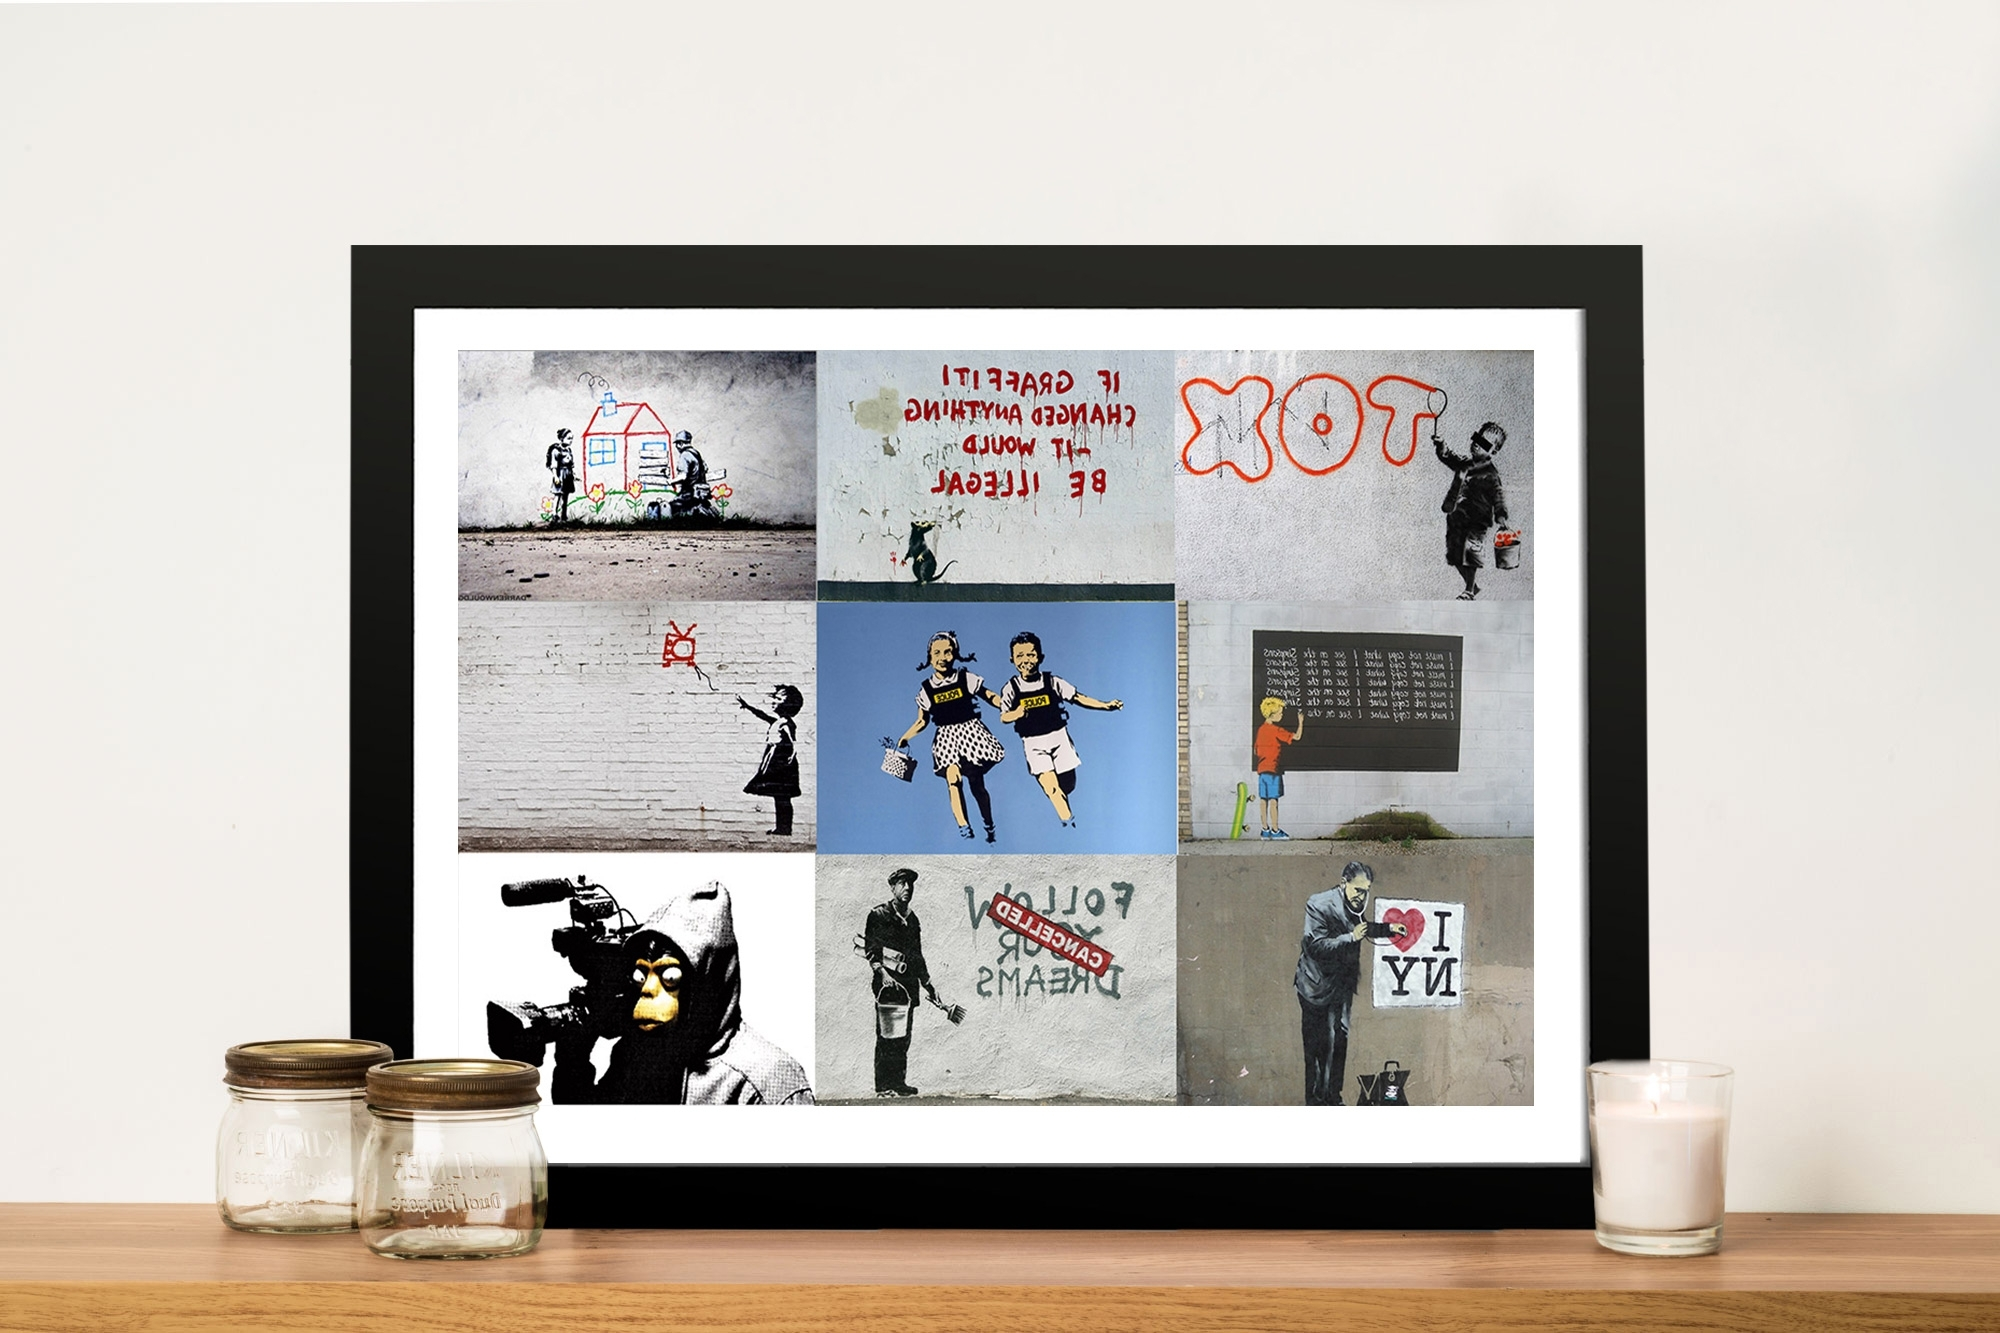 Banksy Montage Pictures Art Framed Wall Art Perth Au With Most Recently Released Framed Wall Art (View 5 of 15)